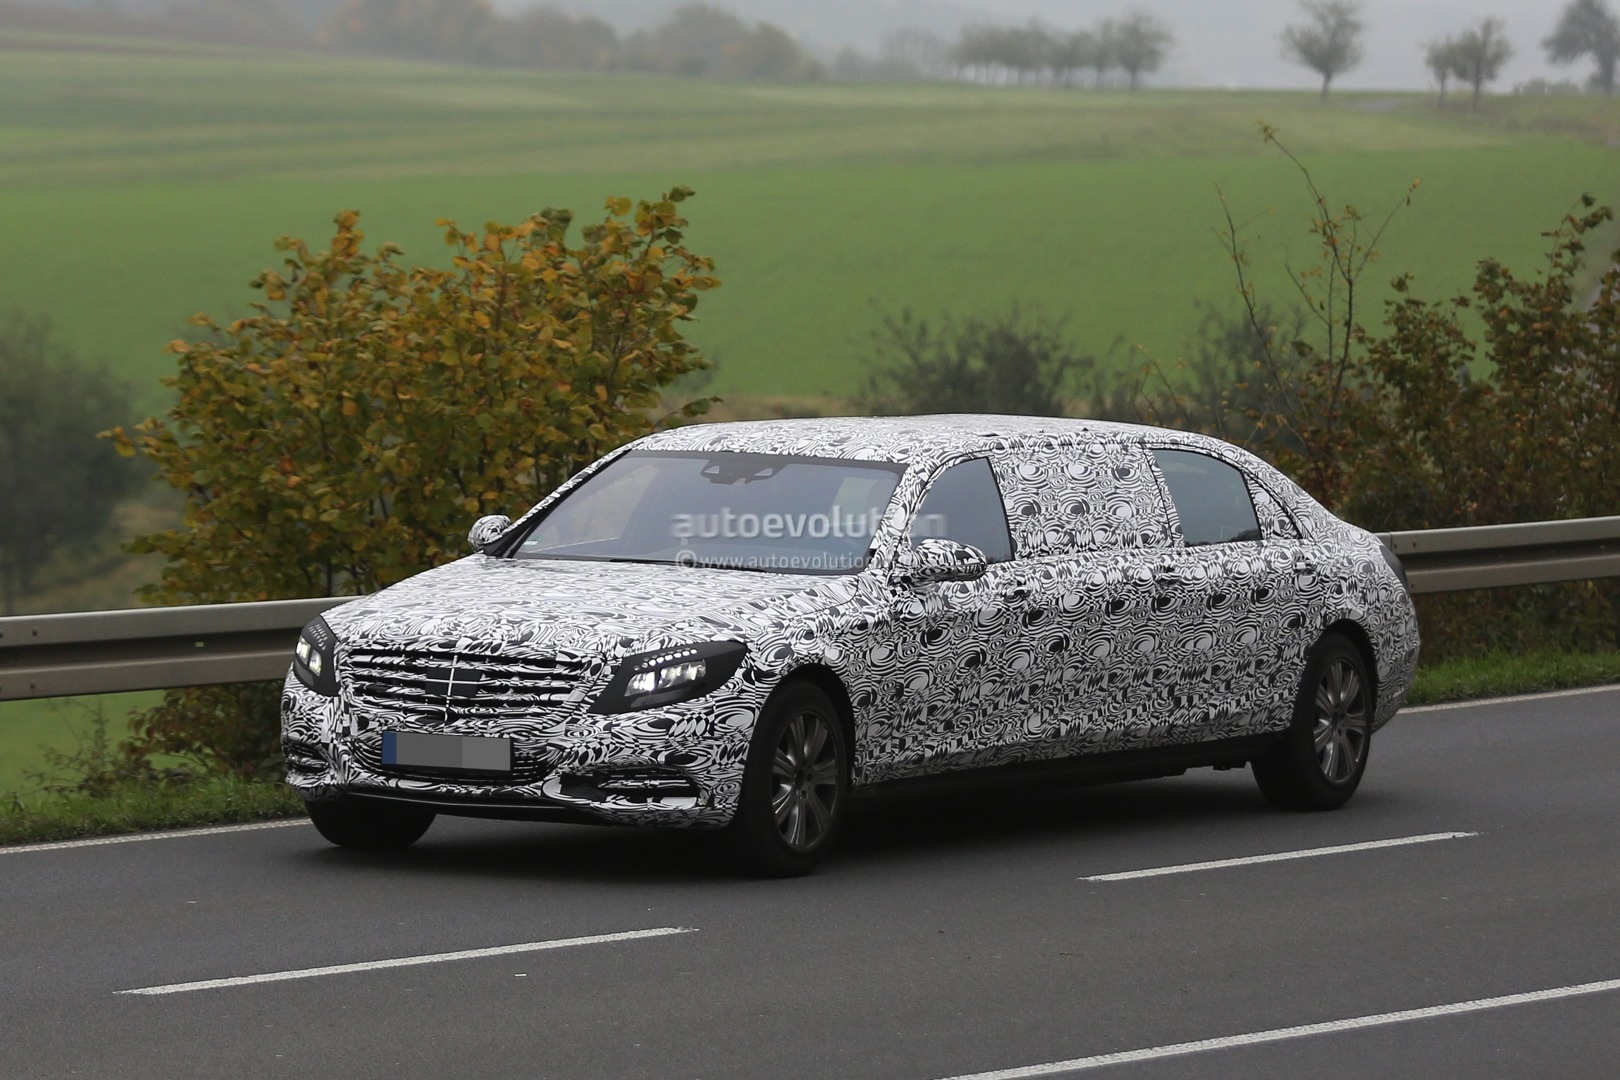 https://s1.cdn.autoevolution.com/images/news/2016-mercedes-benz-s-600-pullman-spied-getting-closer-to-production-photo-gallery-88358_1.jpg